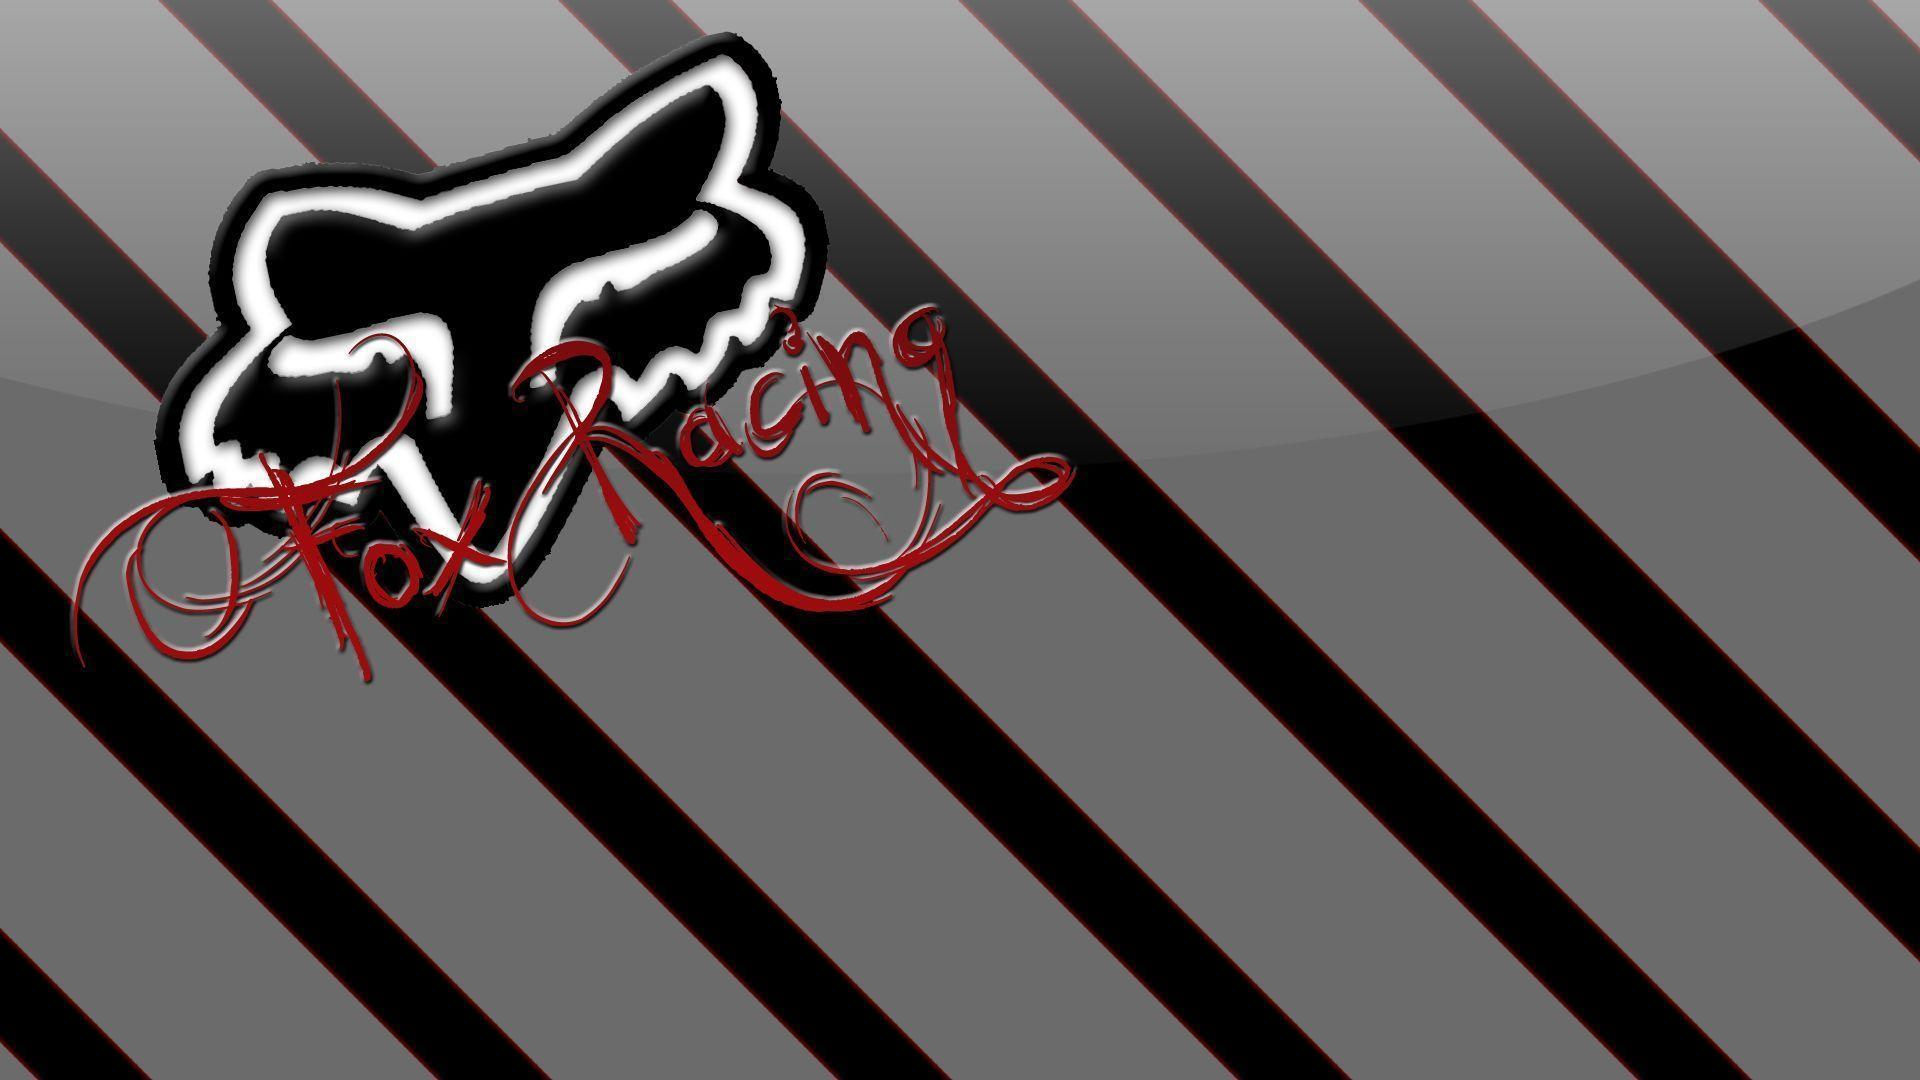 Fox Racing Logo Wallpa...